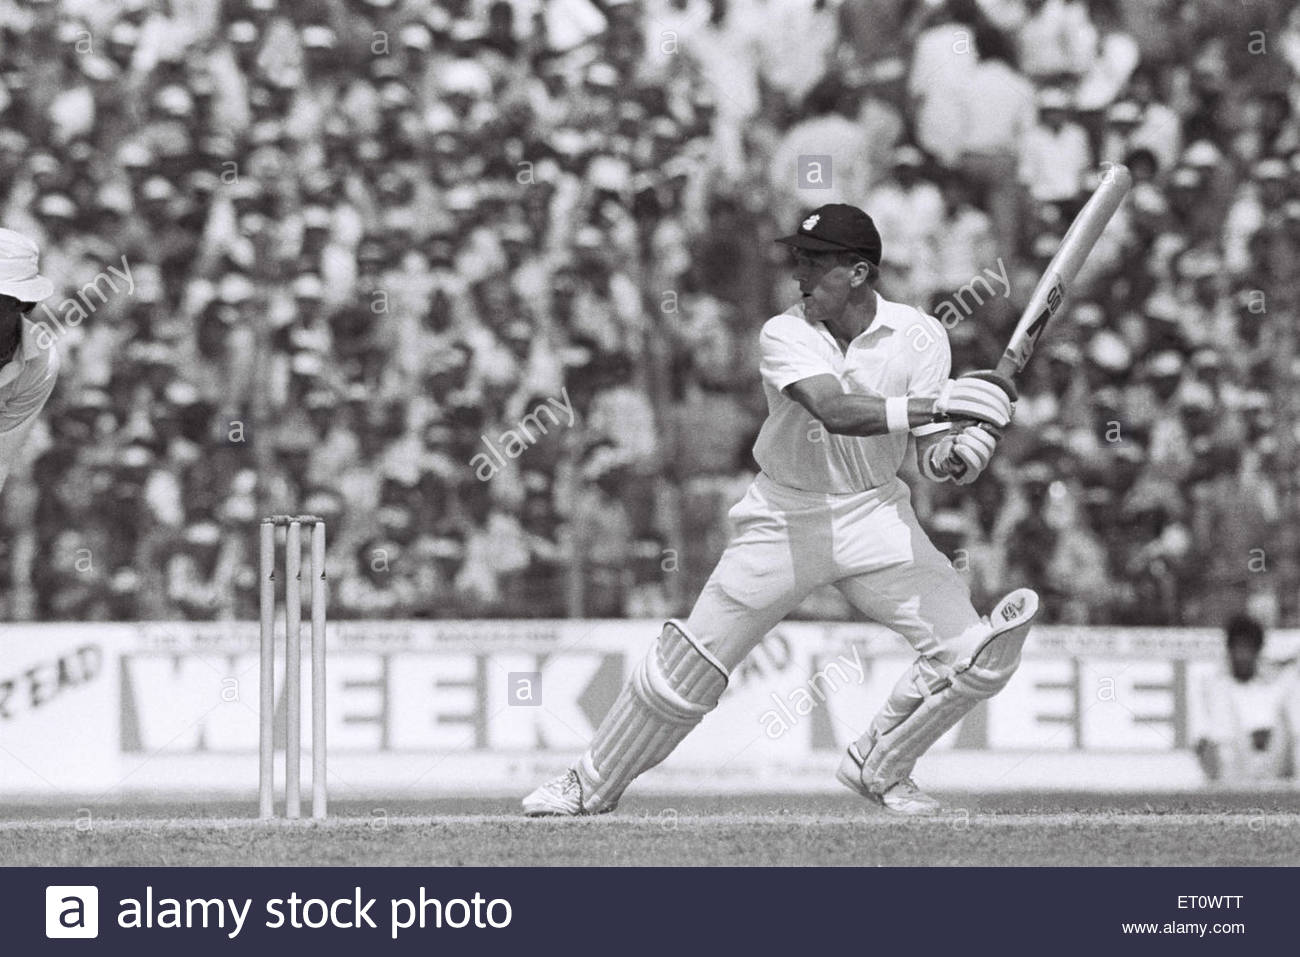 9f3d1fa4 Alec Stewart ; India versus England ; cricket match 1987 ; Kanpur ; India  NOMR -